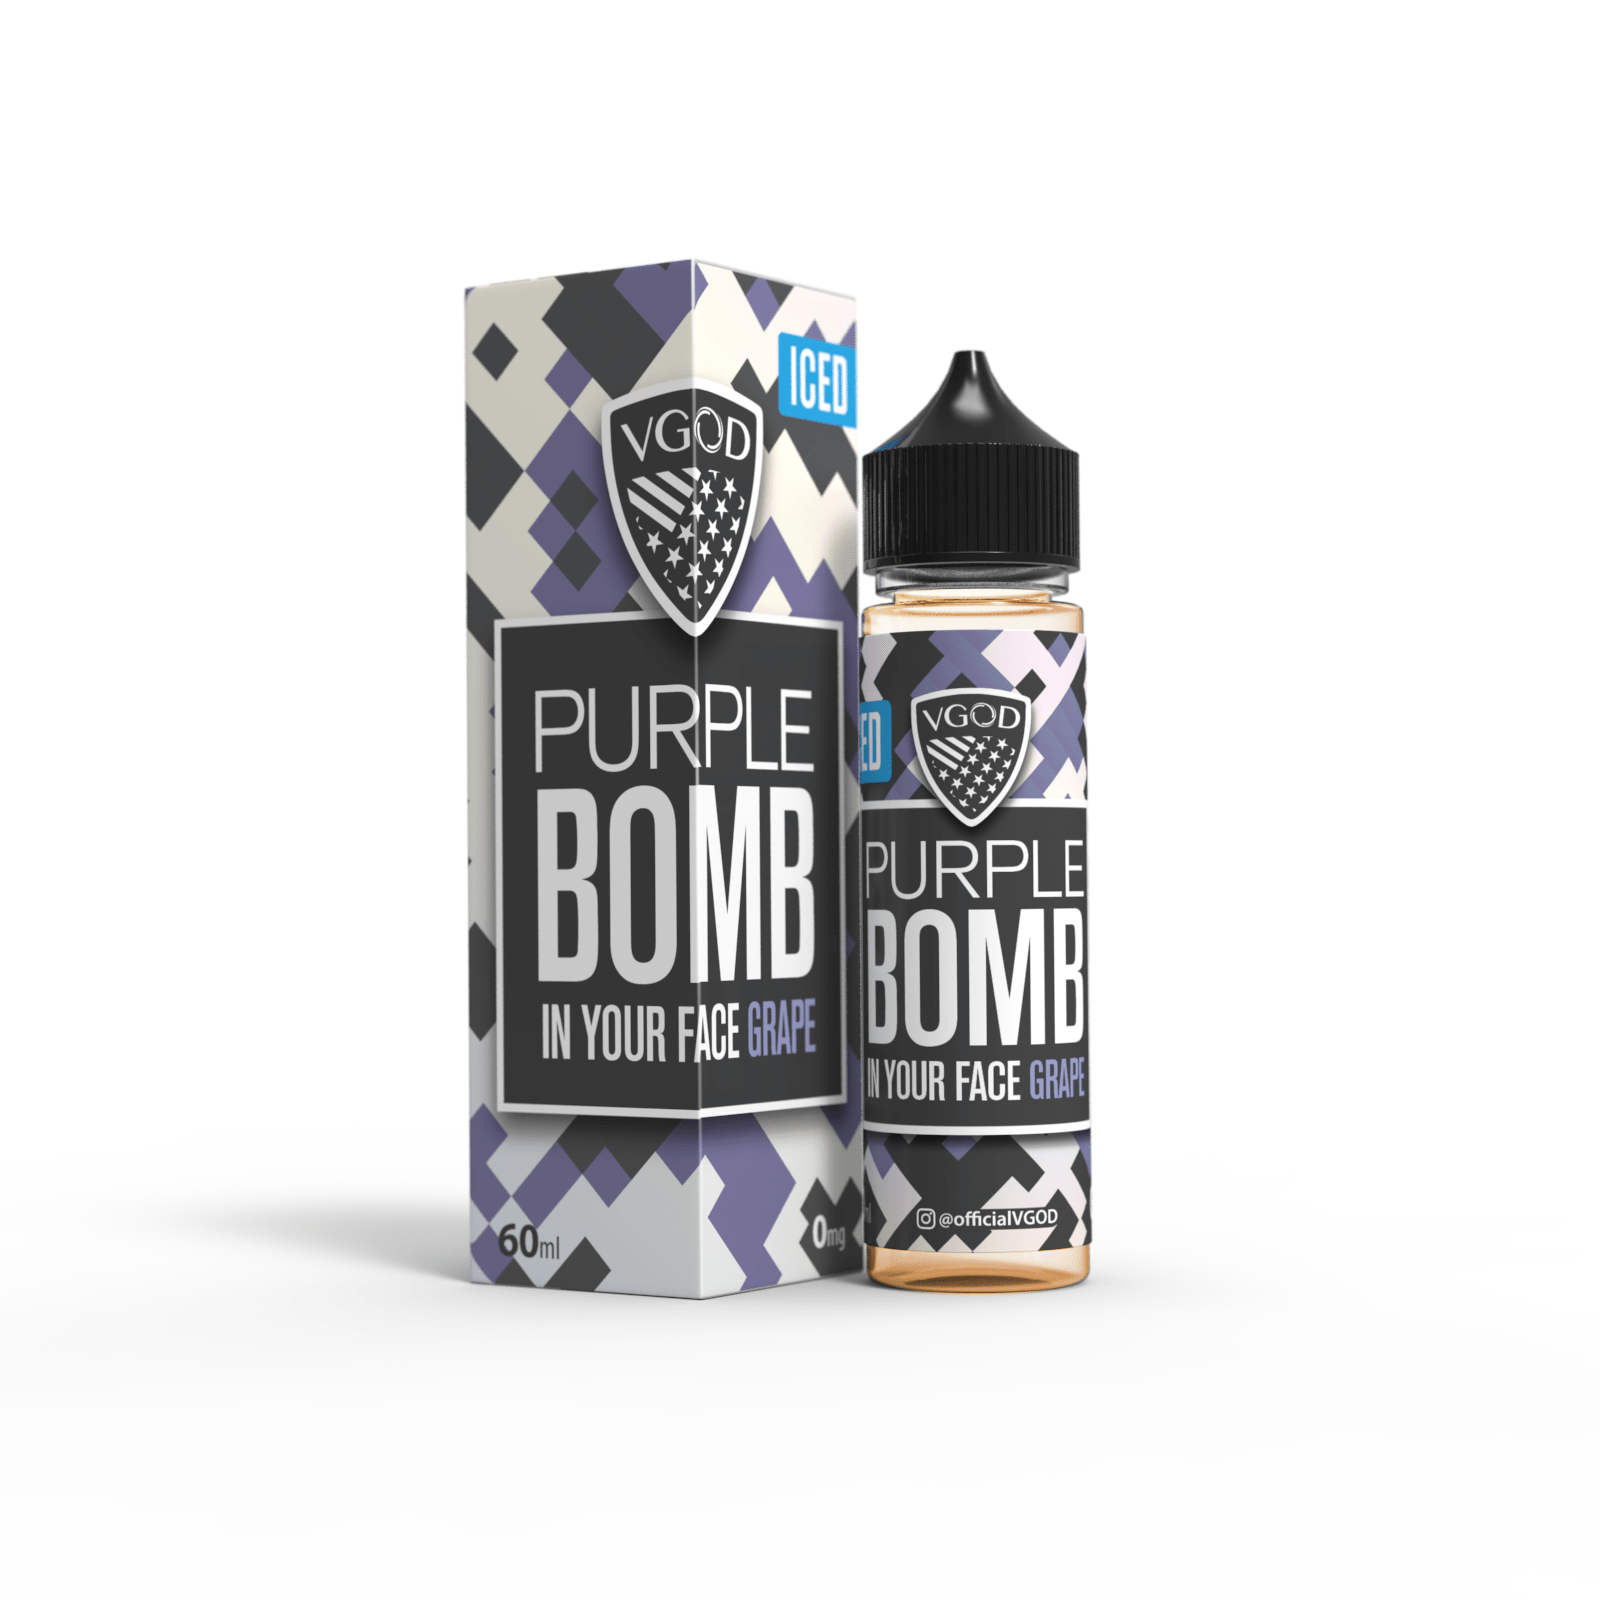 Wholesale VGOD e-juices - Cubano Silver, Apple Berry Bomb